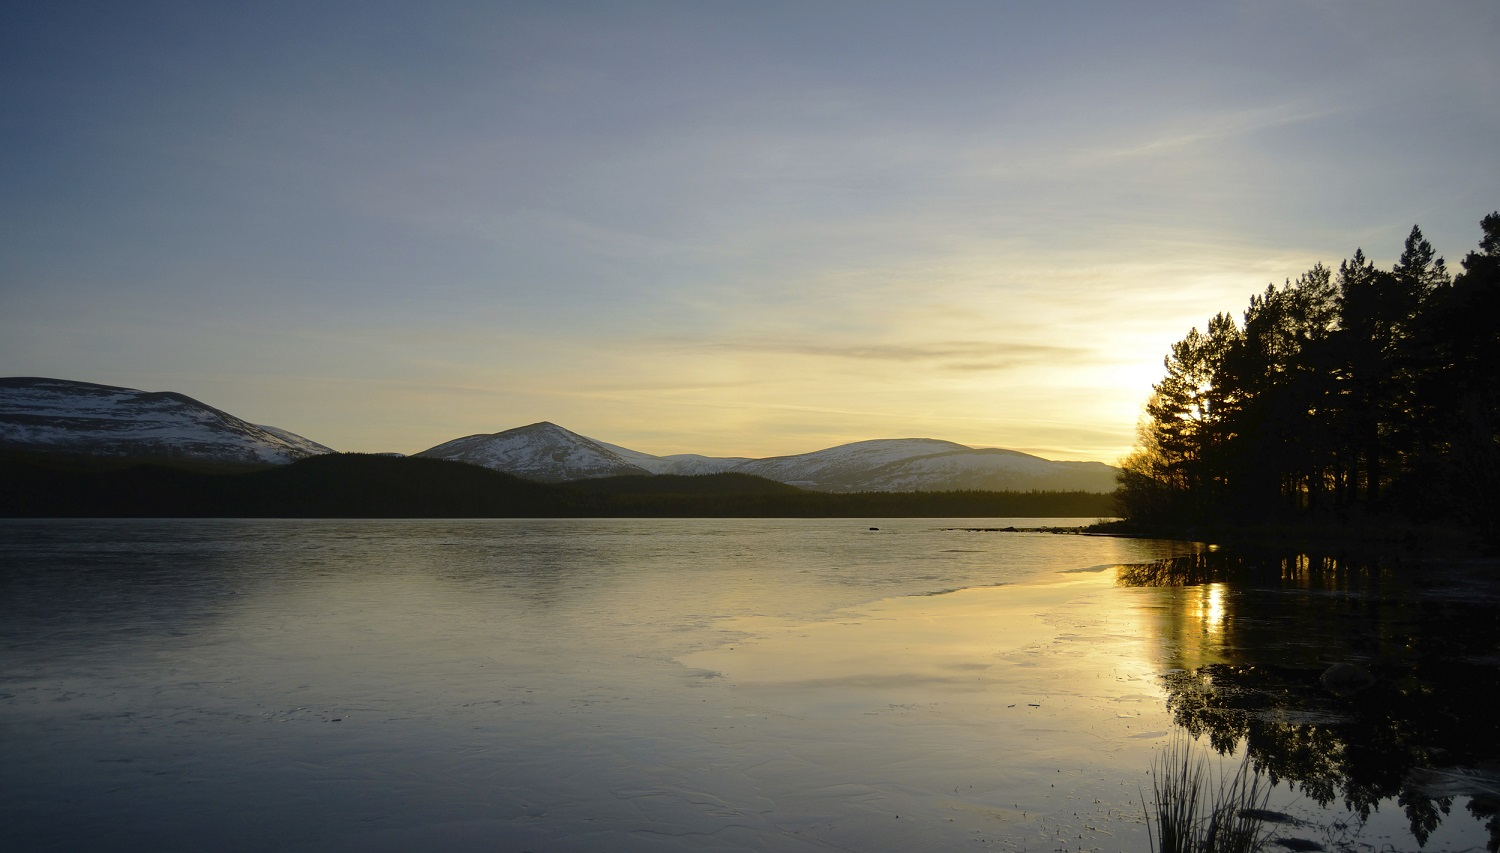 Loch at sunset, Cairngorms National Park, Scotland by Ben Andrew (RSPB Images)